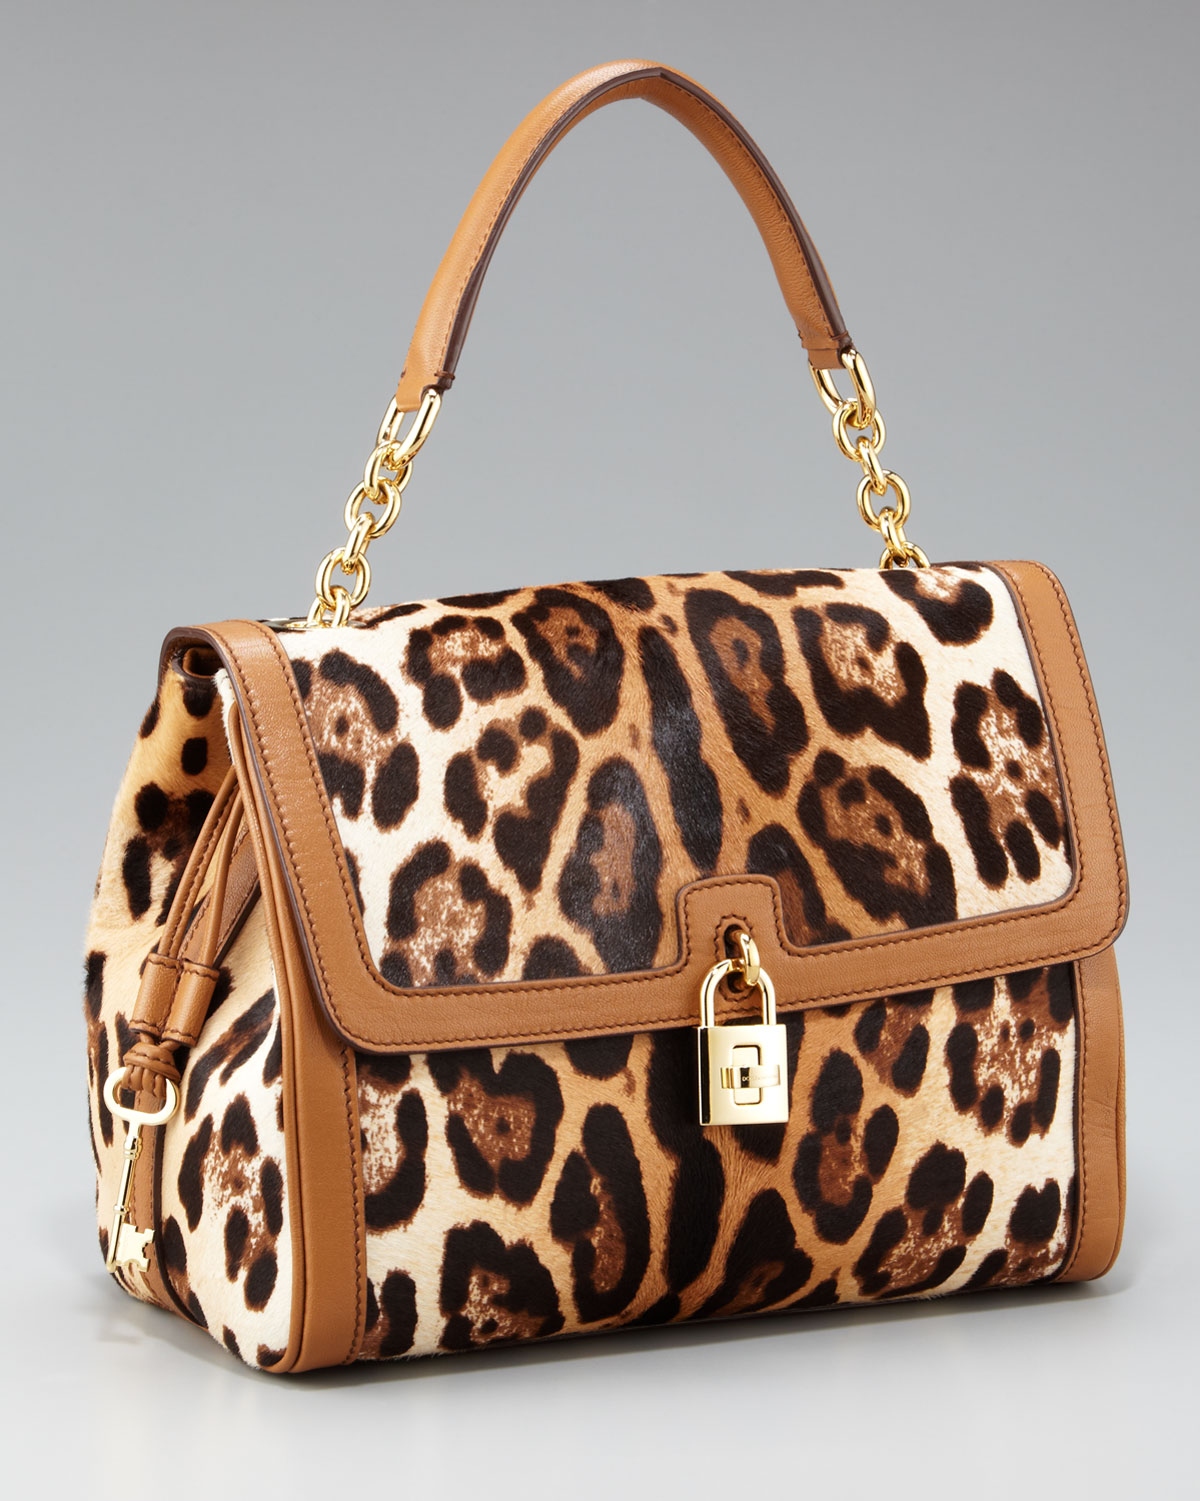 dbfcc79a2027e Dolce And Gabbana Giraffe Print Handbags Handbag Photos. Dolce And Gabbana  Animal